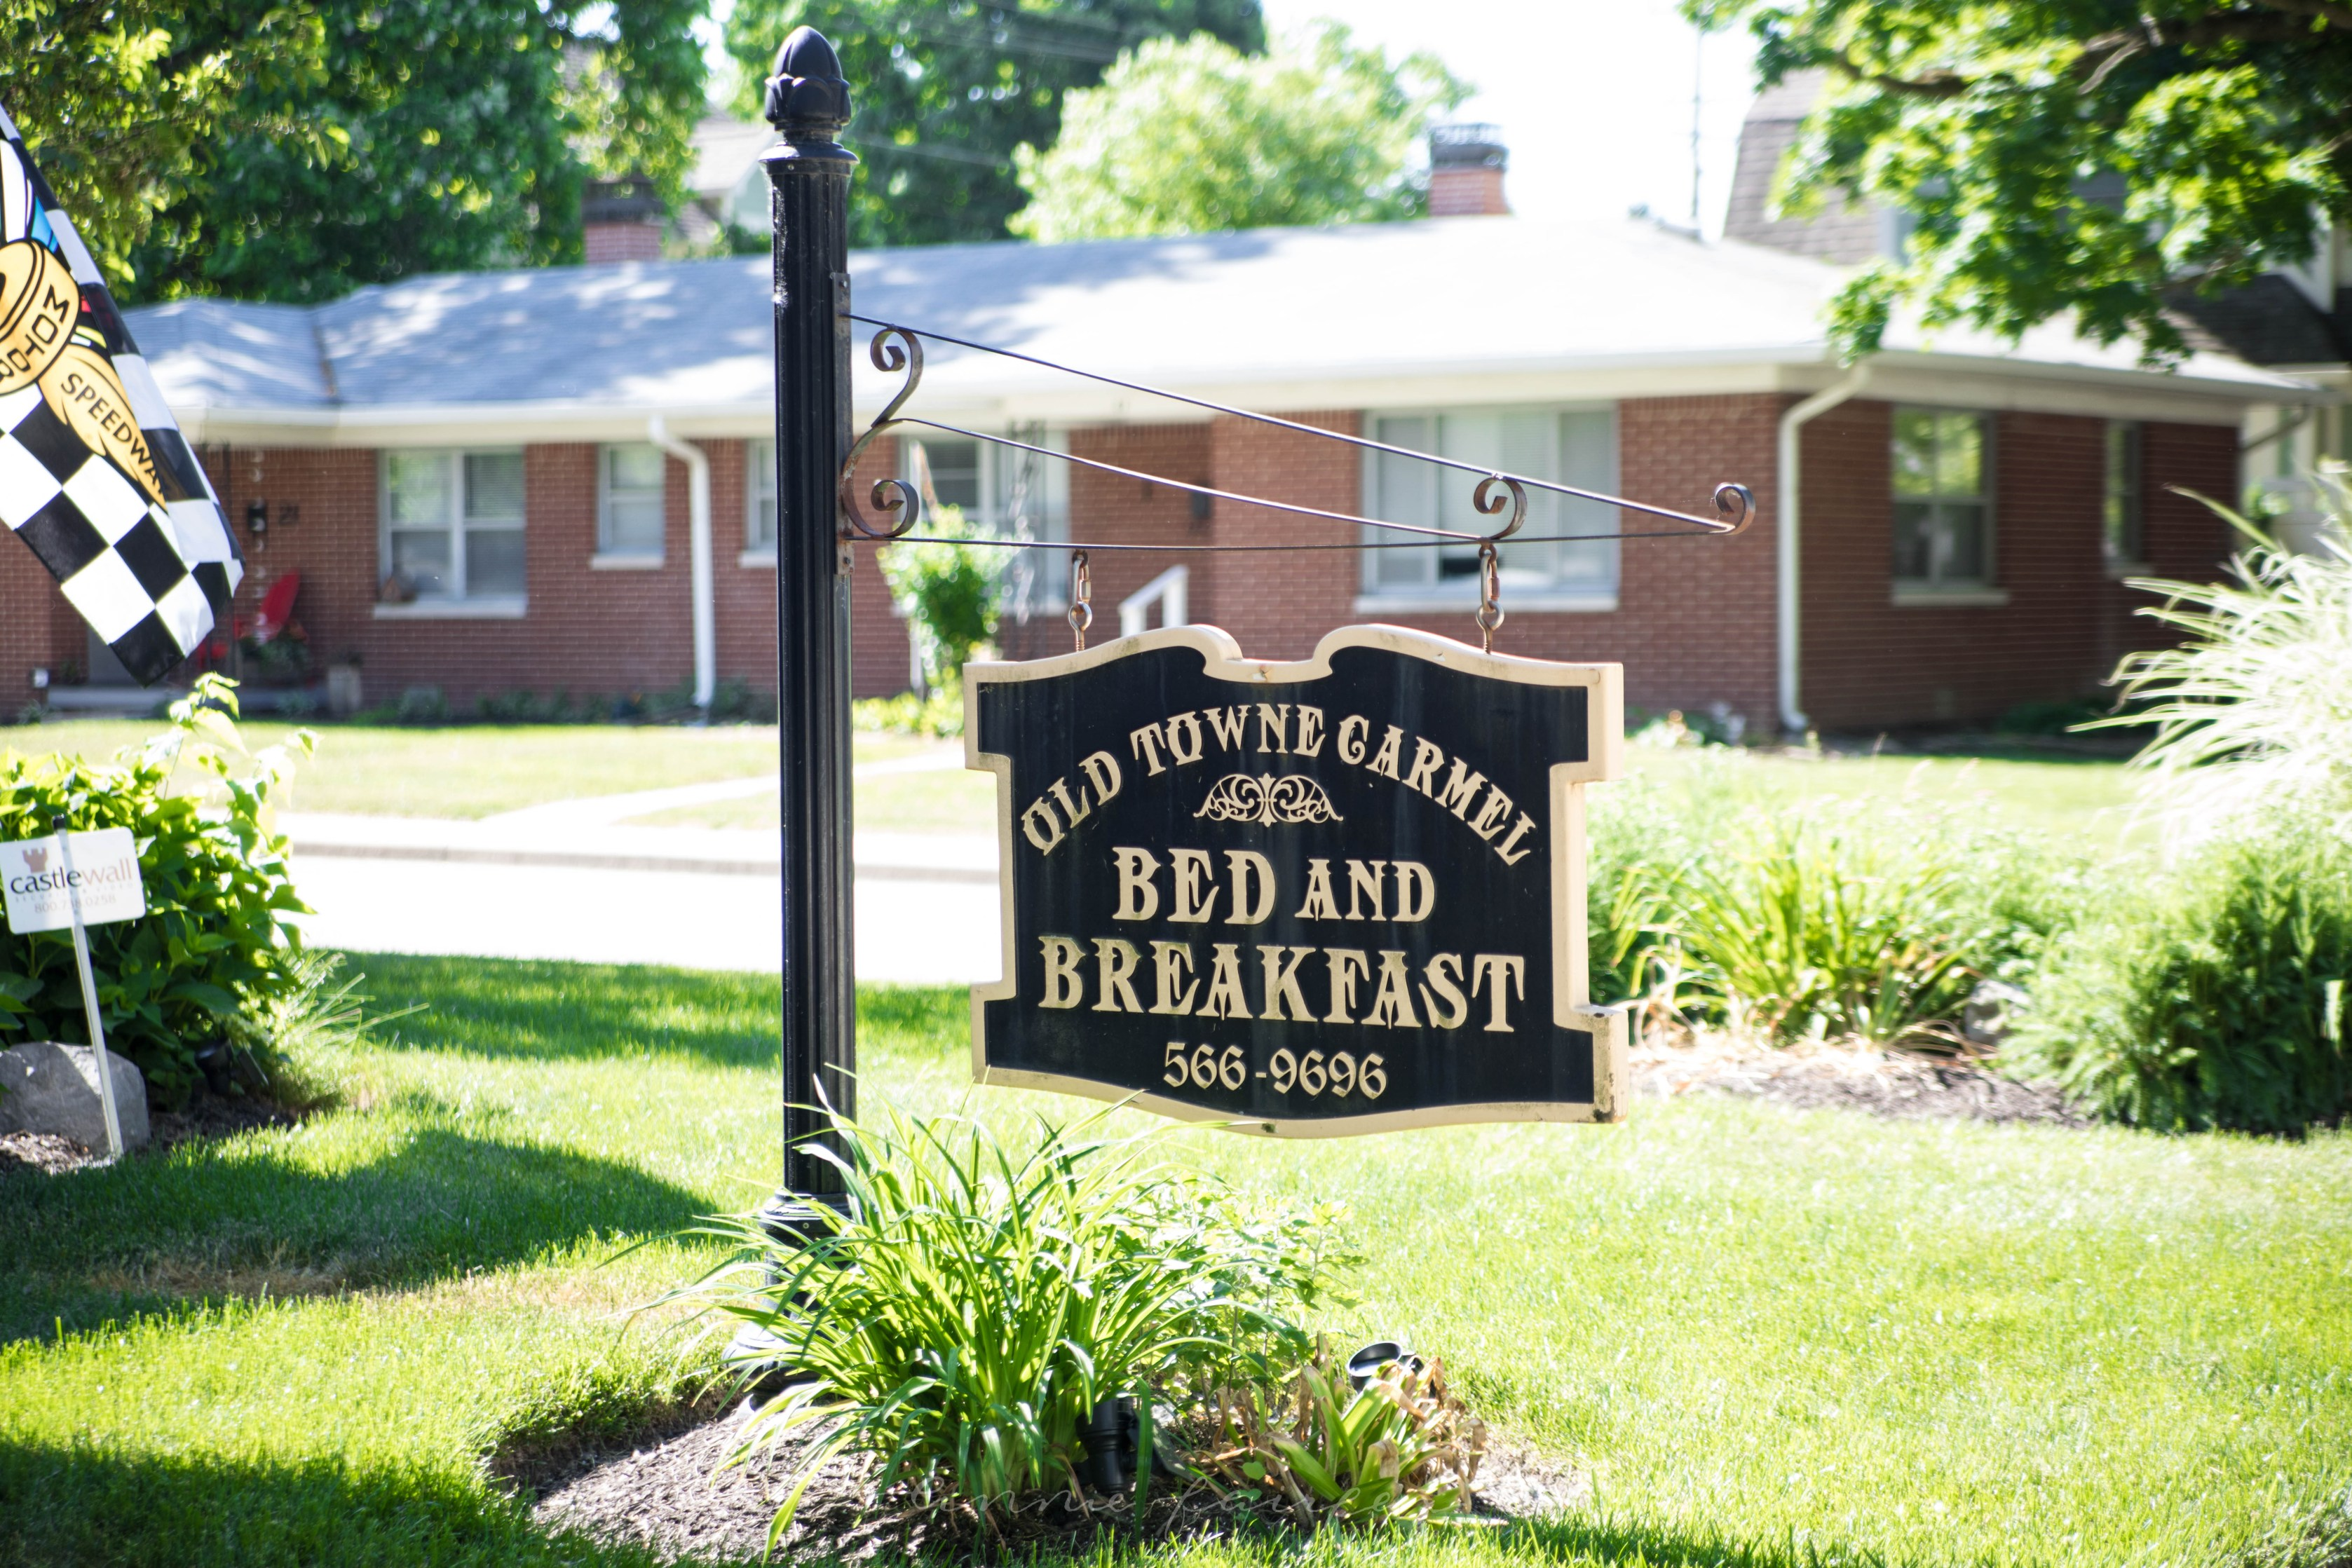 Carmel, Indiana Bed & Breakfast Complete Traveler's Guide to Carmel, IN